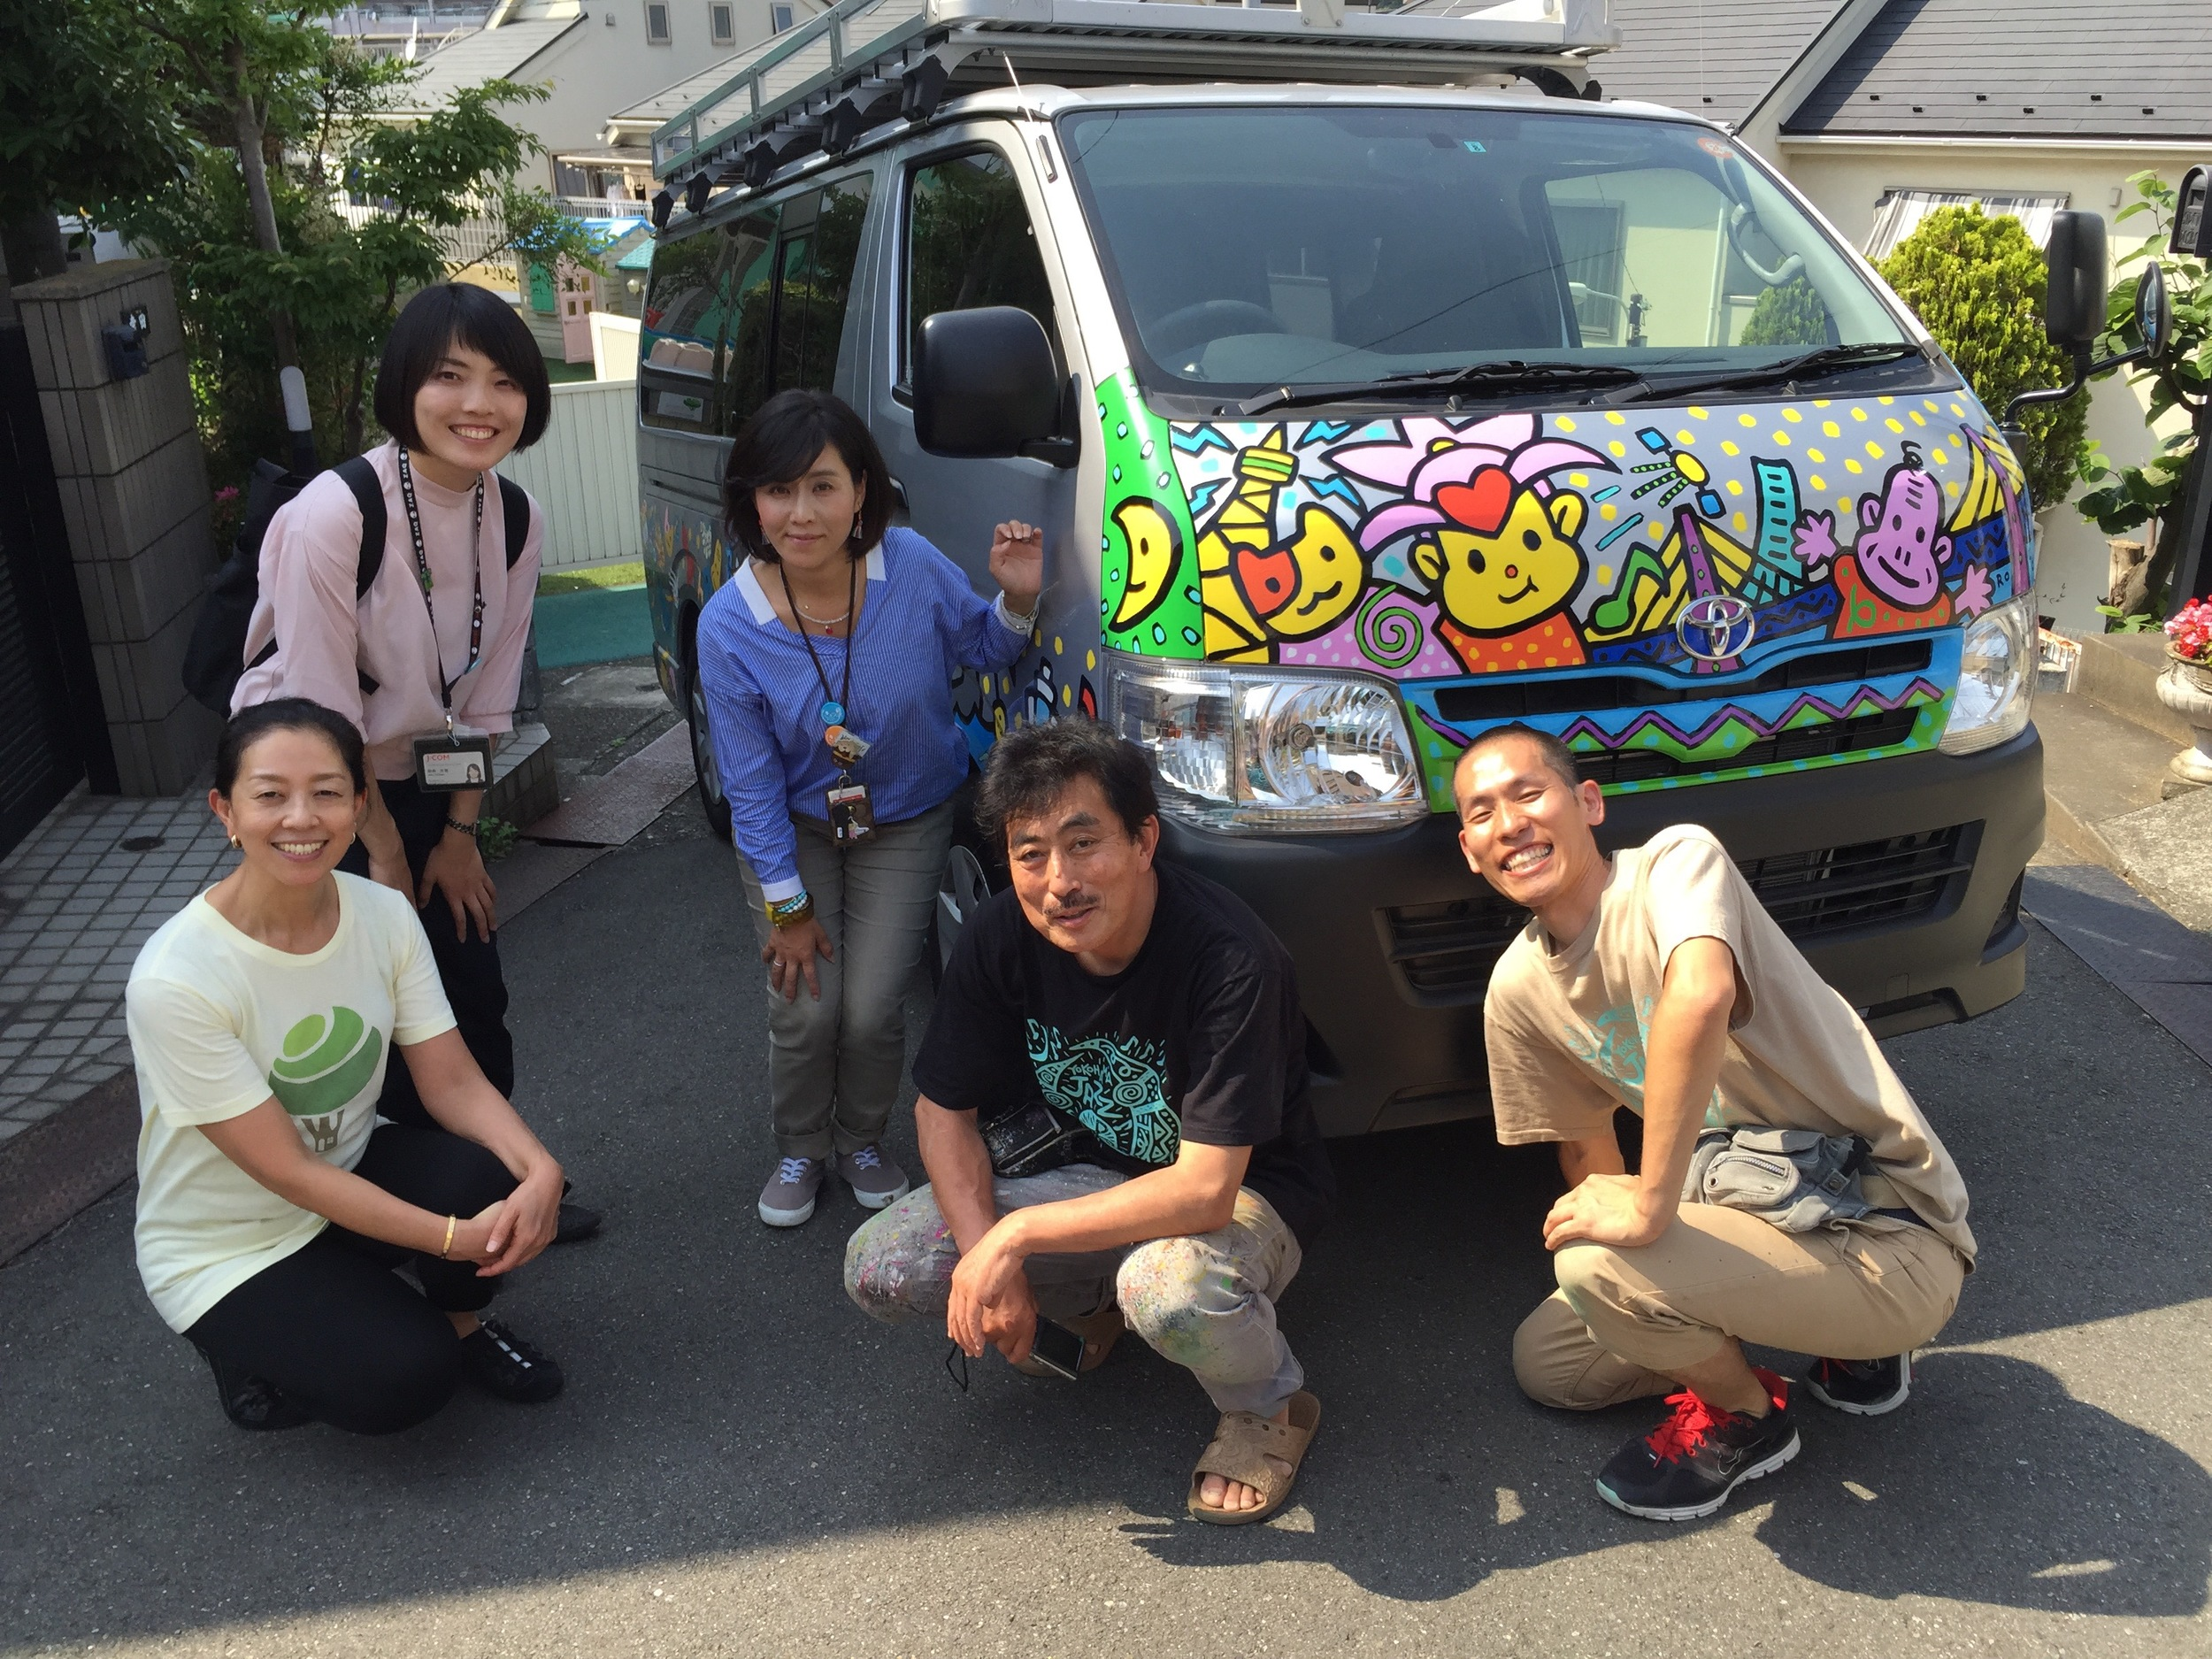 All of us, the J:COM crew and Treehouse teachers, in front of the travelling van.